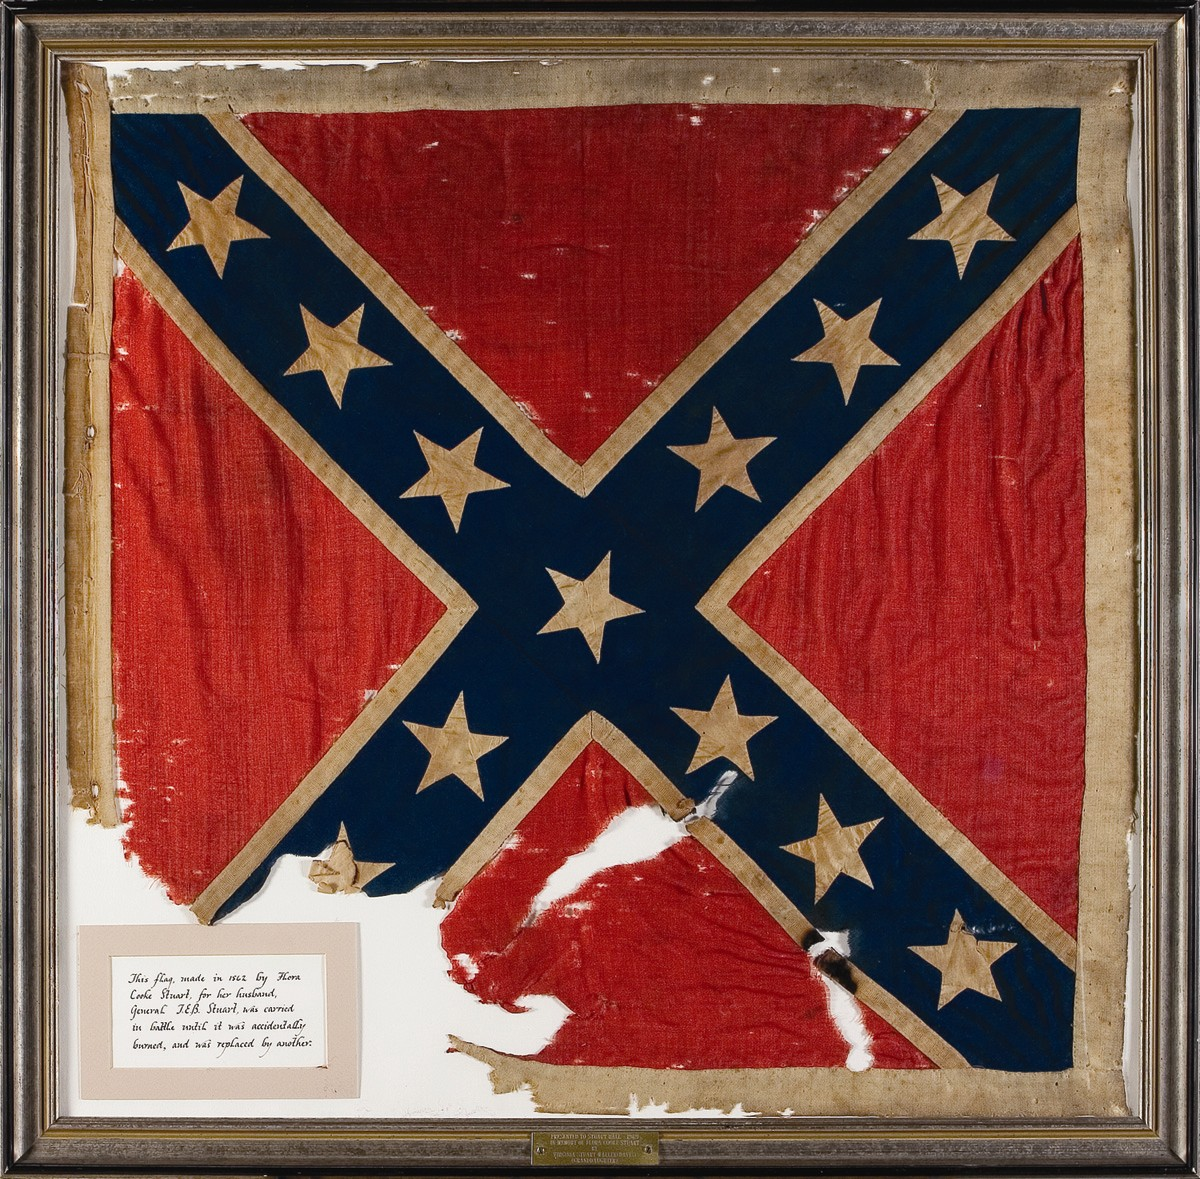 Historic Valuable Civil War Flags Artifacts In Auction